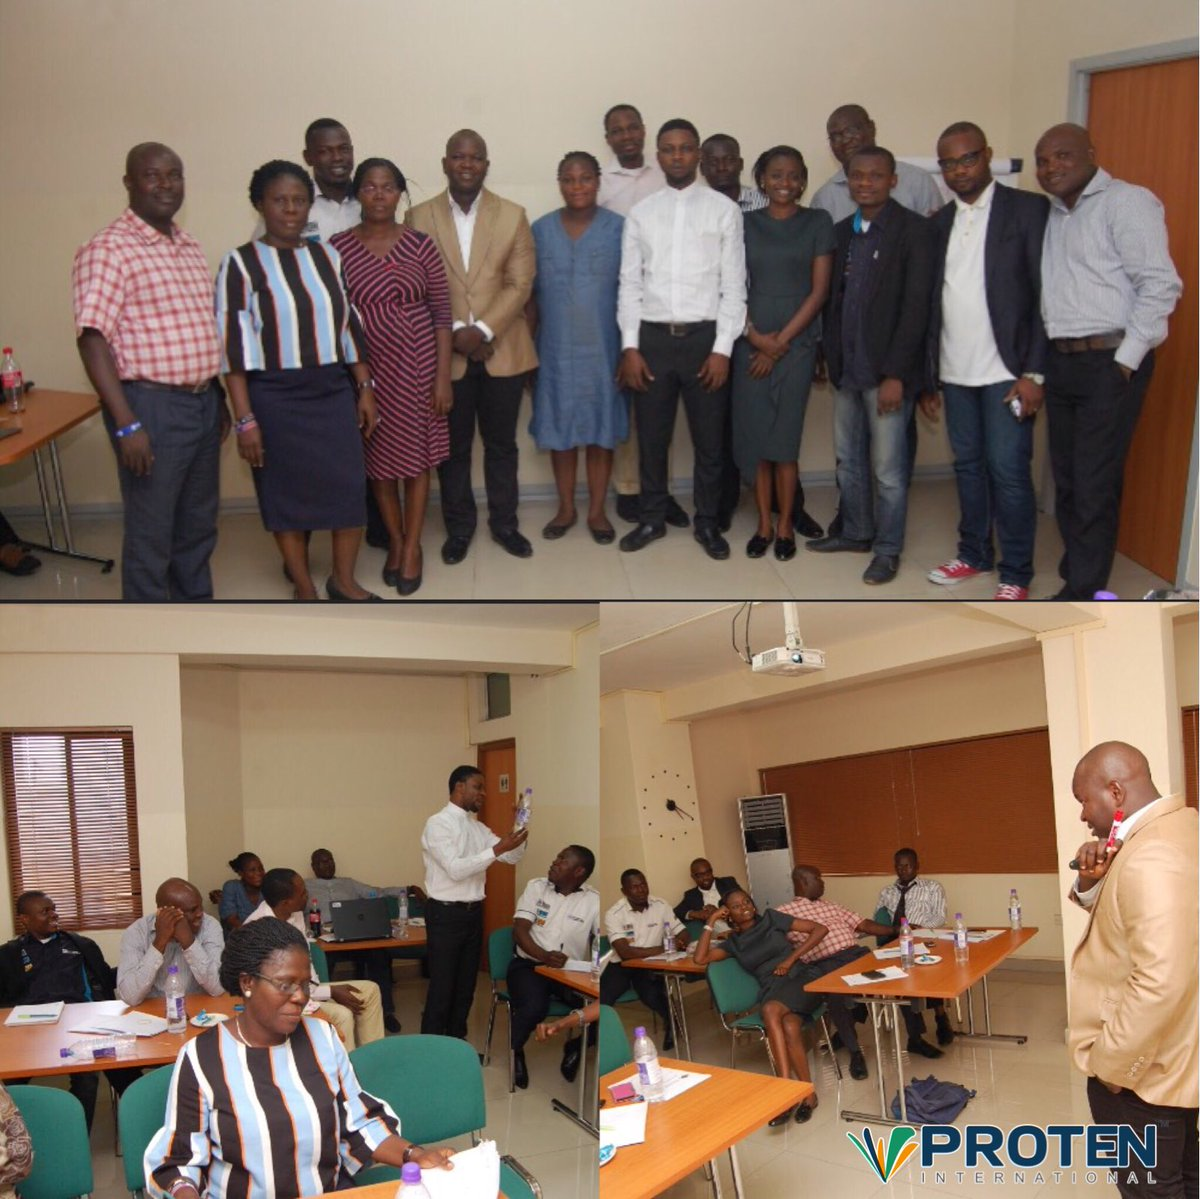 Value Added and Sales Marketing training.Register for our Open Training or even a Bespoke Training  #protenintl #training #consulting <br>http://pic.twitter.com/mWYlaDxZ1x